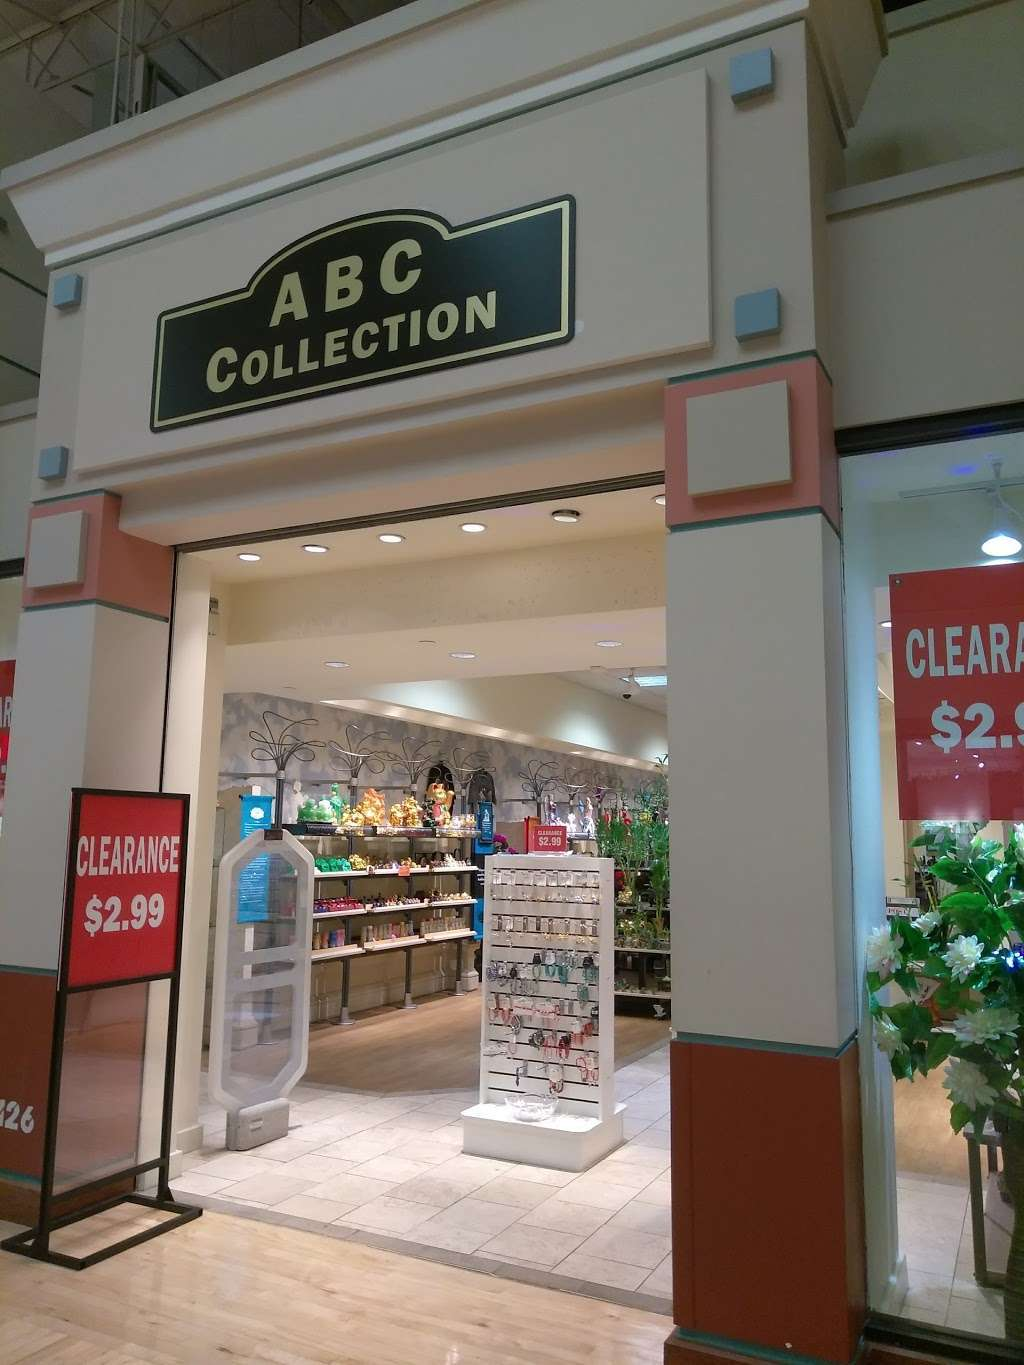 ABC Collection, Potomac Mills Outlet - home goods store  | Photo 2 of 2 | Address: 2860 Potomac Mills Cir, Woodbridge, VA 22192, USA